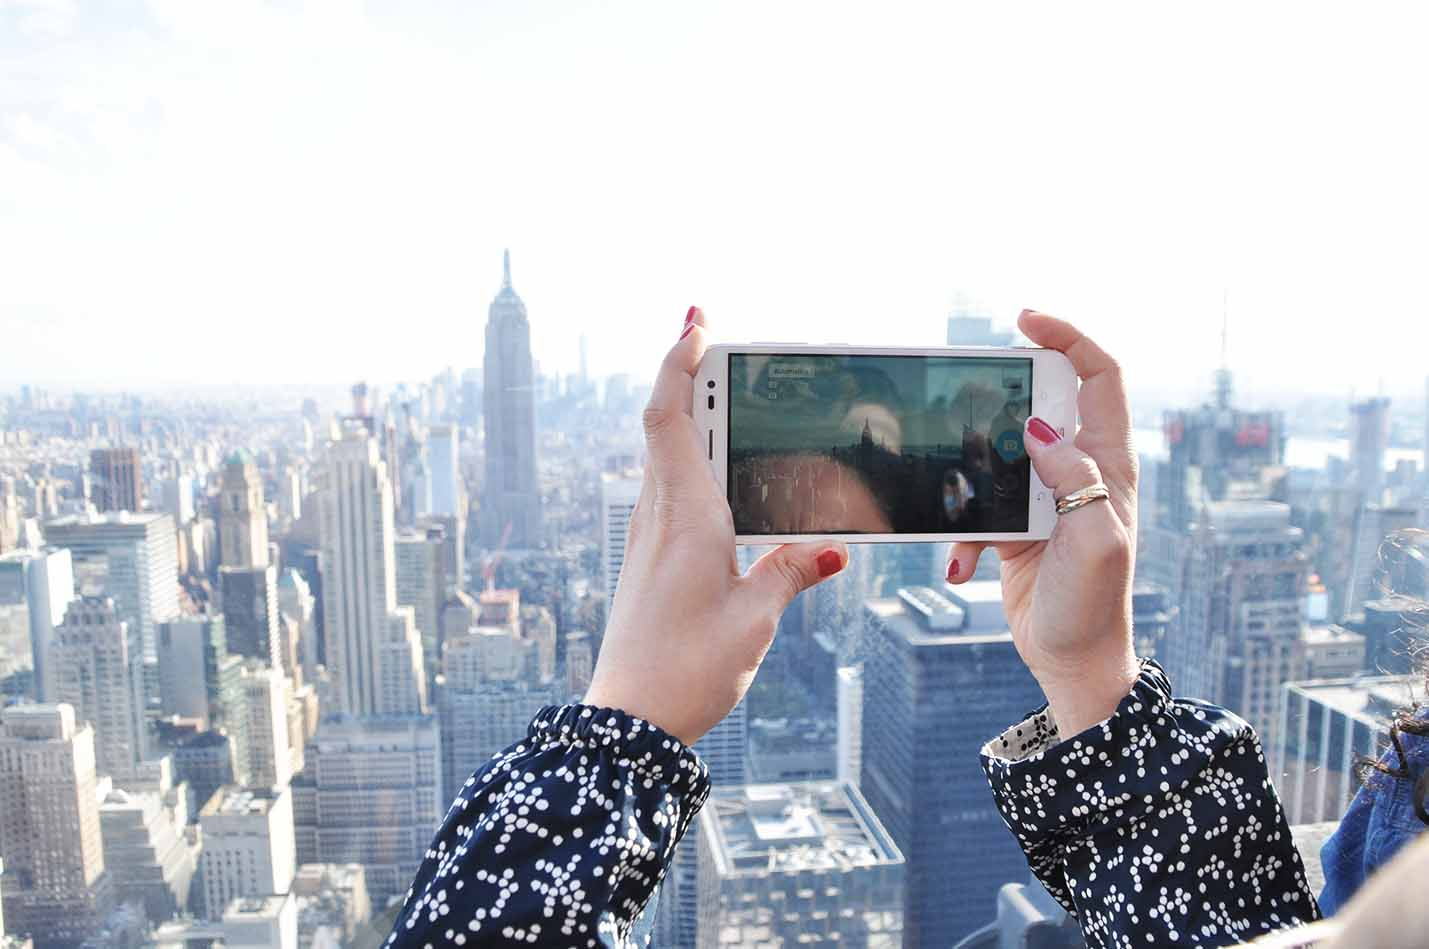 new-york-viaggio-consigli-posti-dove-andare-e-cosa-fare-park-avenue-rockefeller-center-valentina-coco-fashion-blogger-travel-zenfonezoom